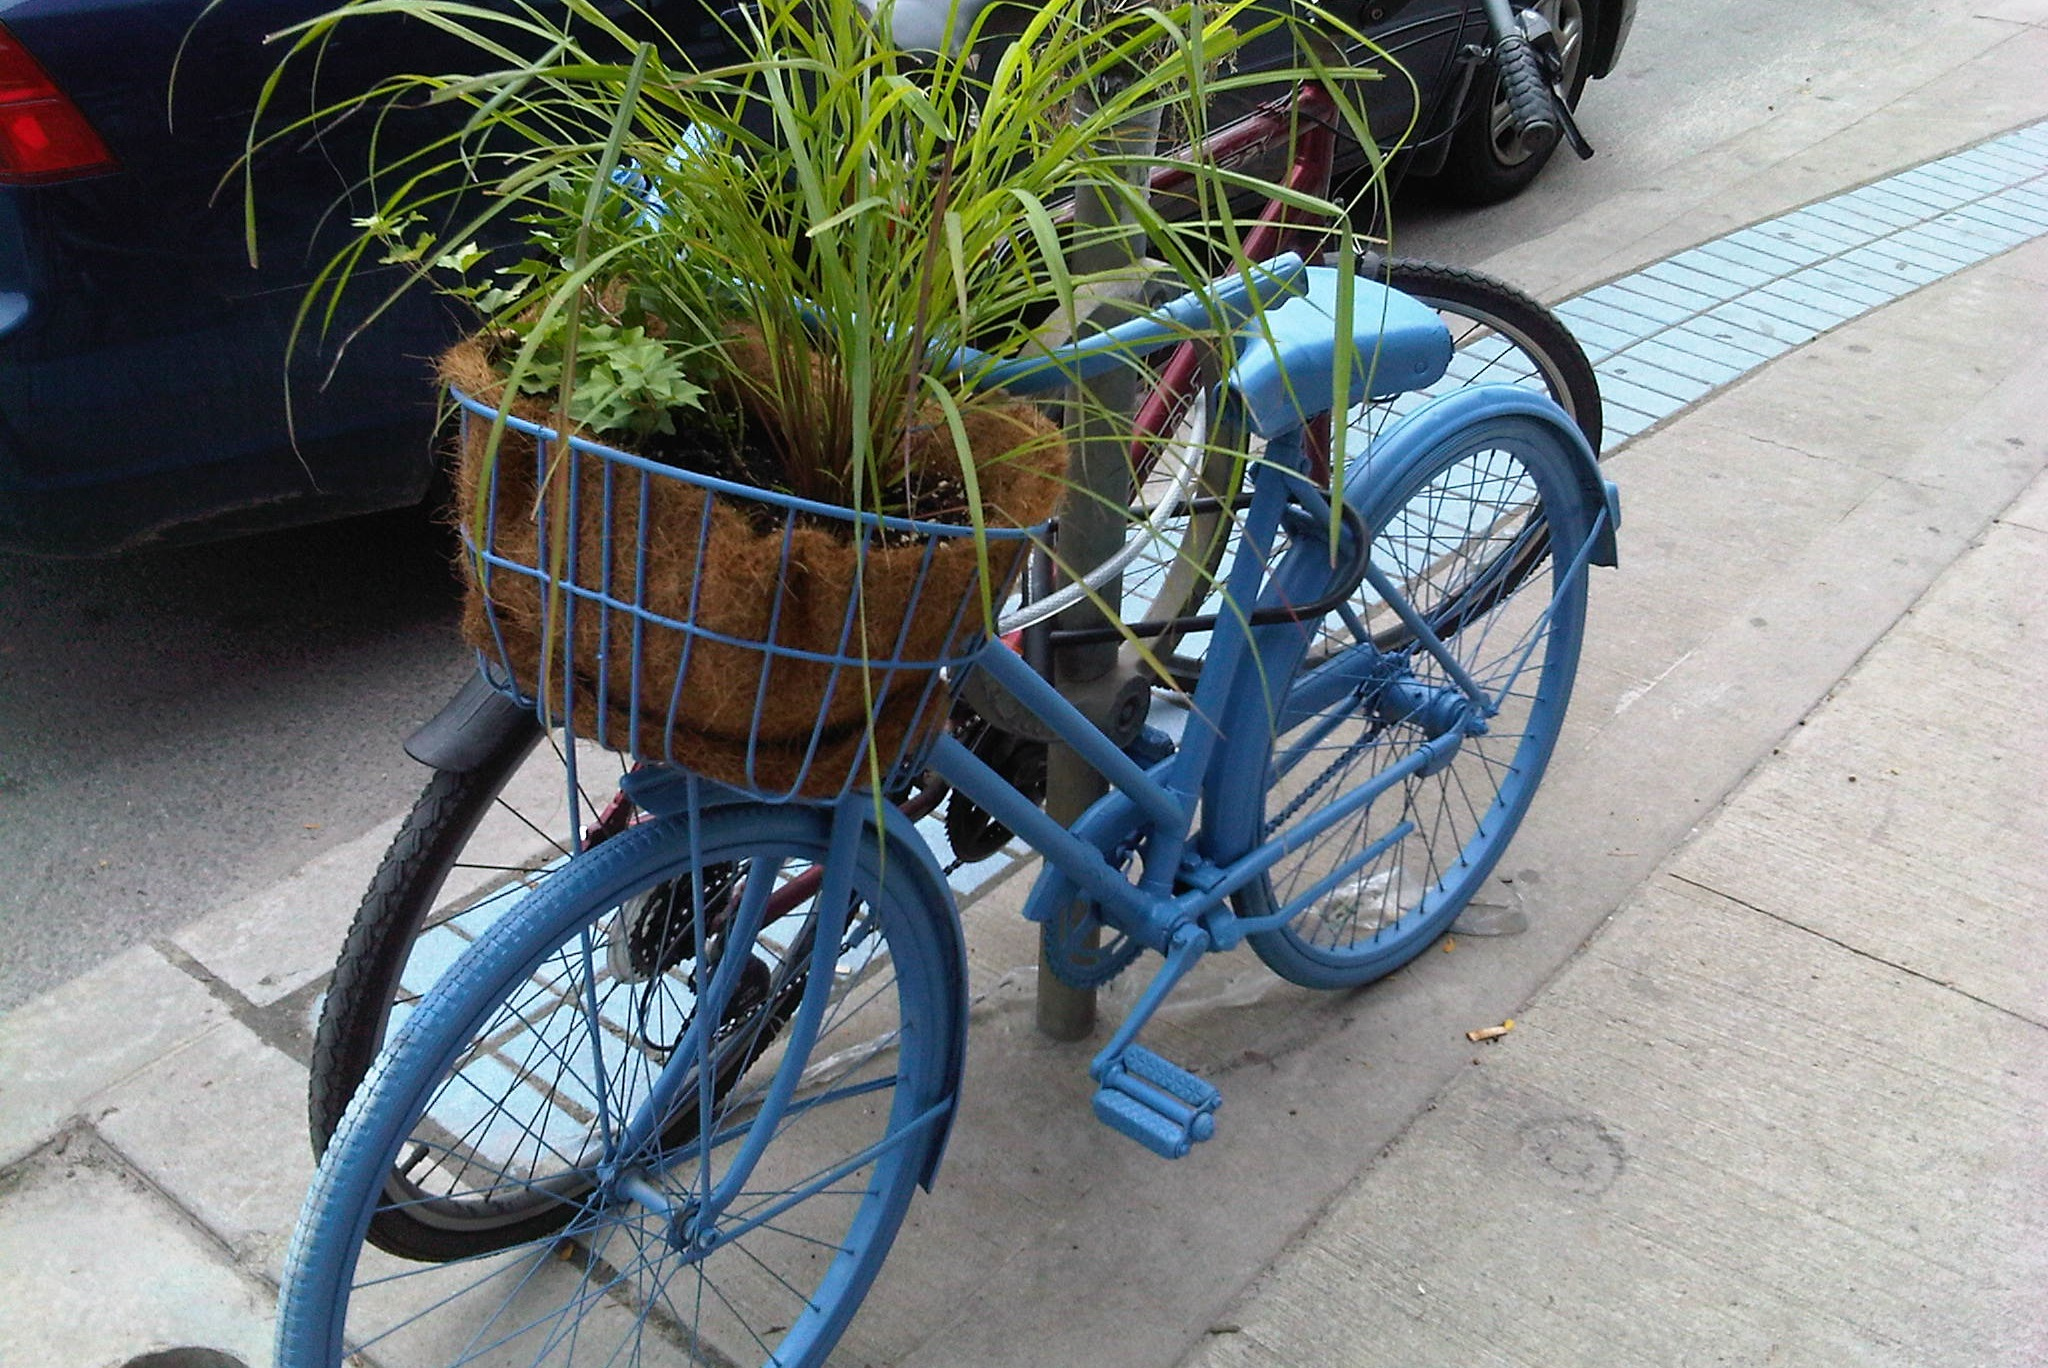 Bikes and plants